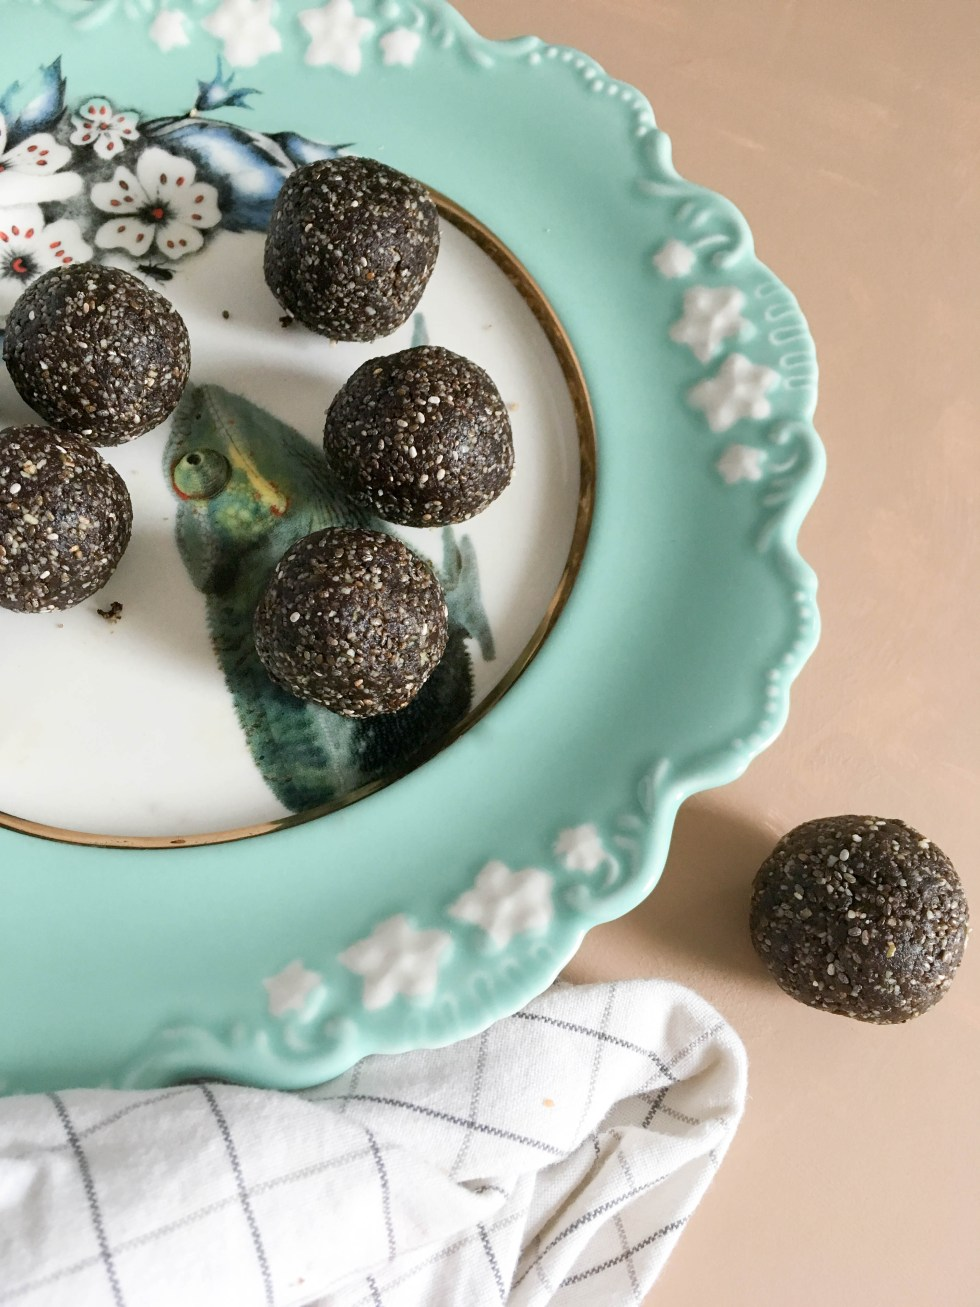 Protein Power Chocolate Truffles are an easy, healthy snack made with pumpkin seeds and dates | POP KITCHEN